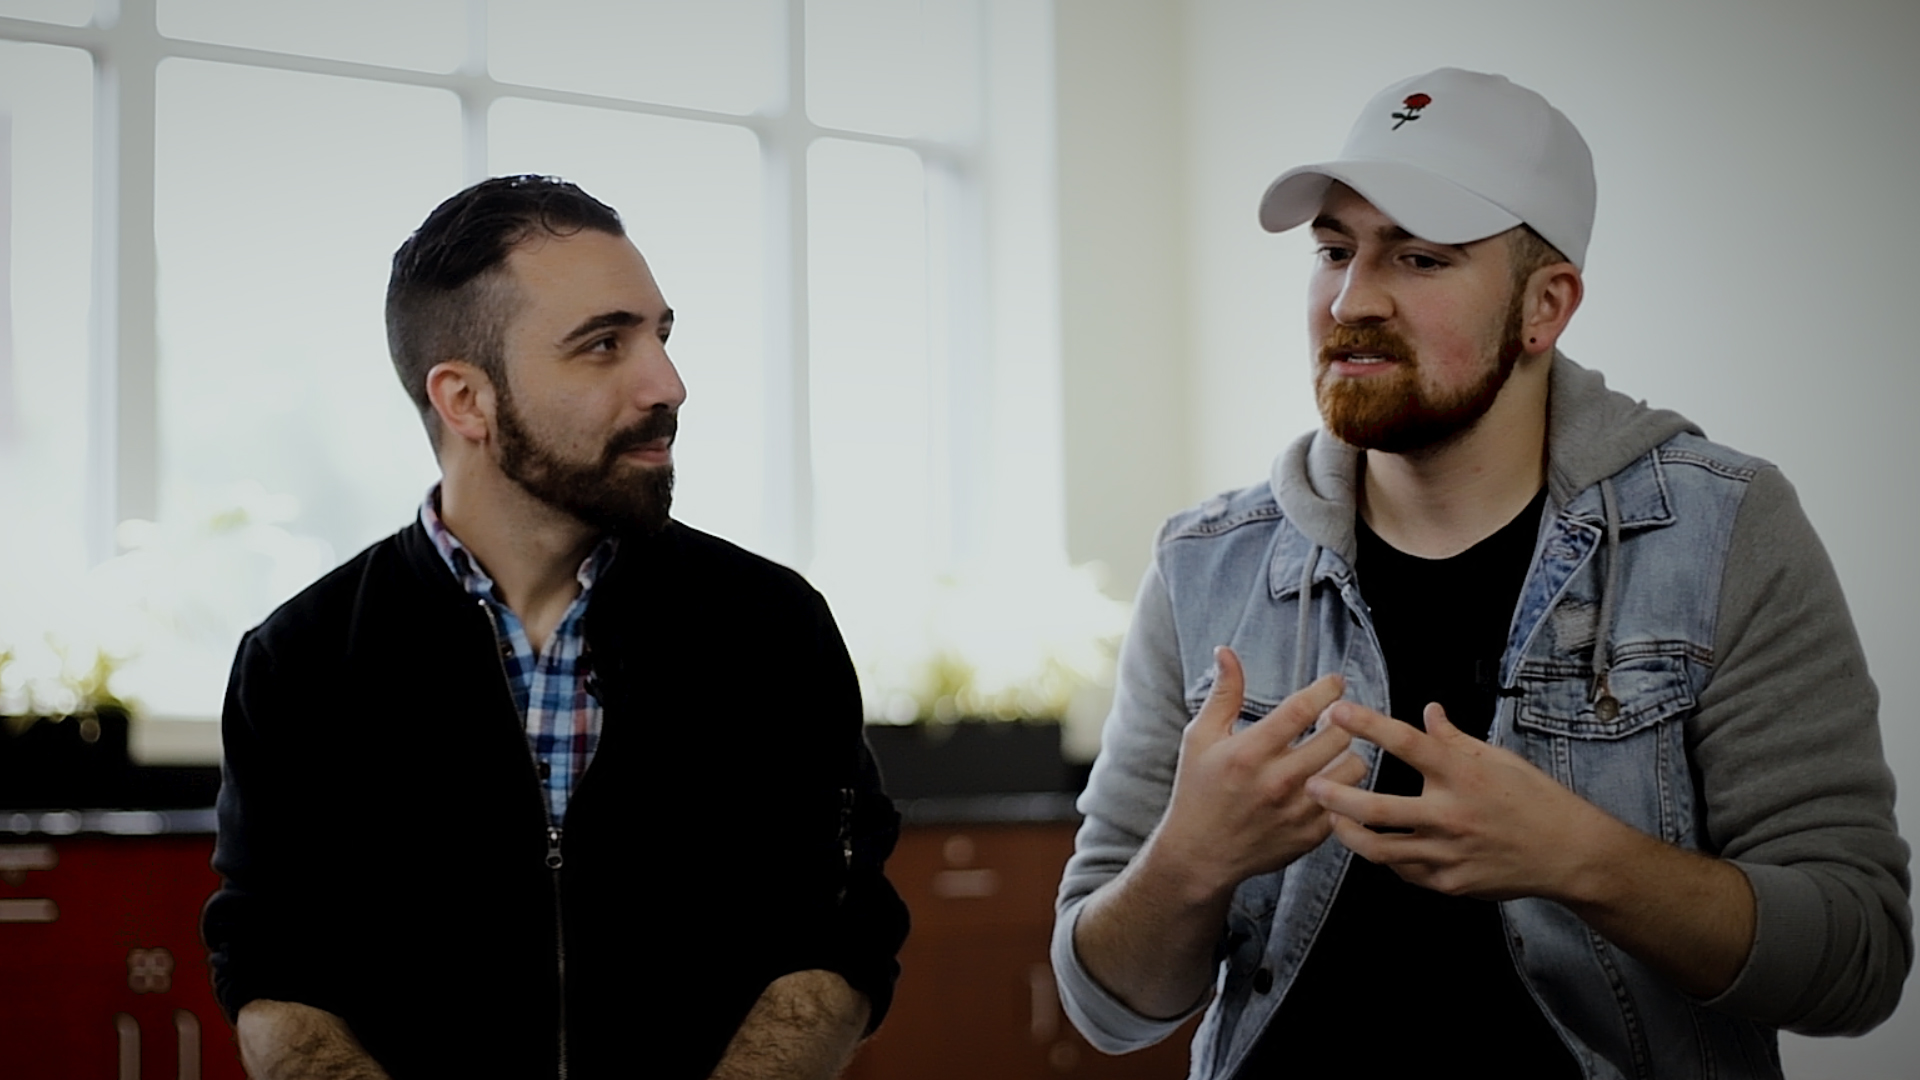 Our Conversation with Ryan Kennedy and Steven Musso of People & Songs